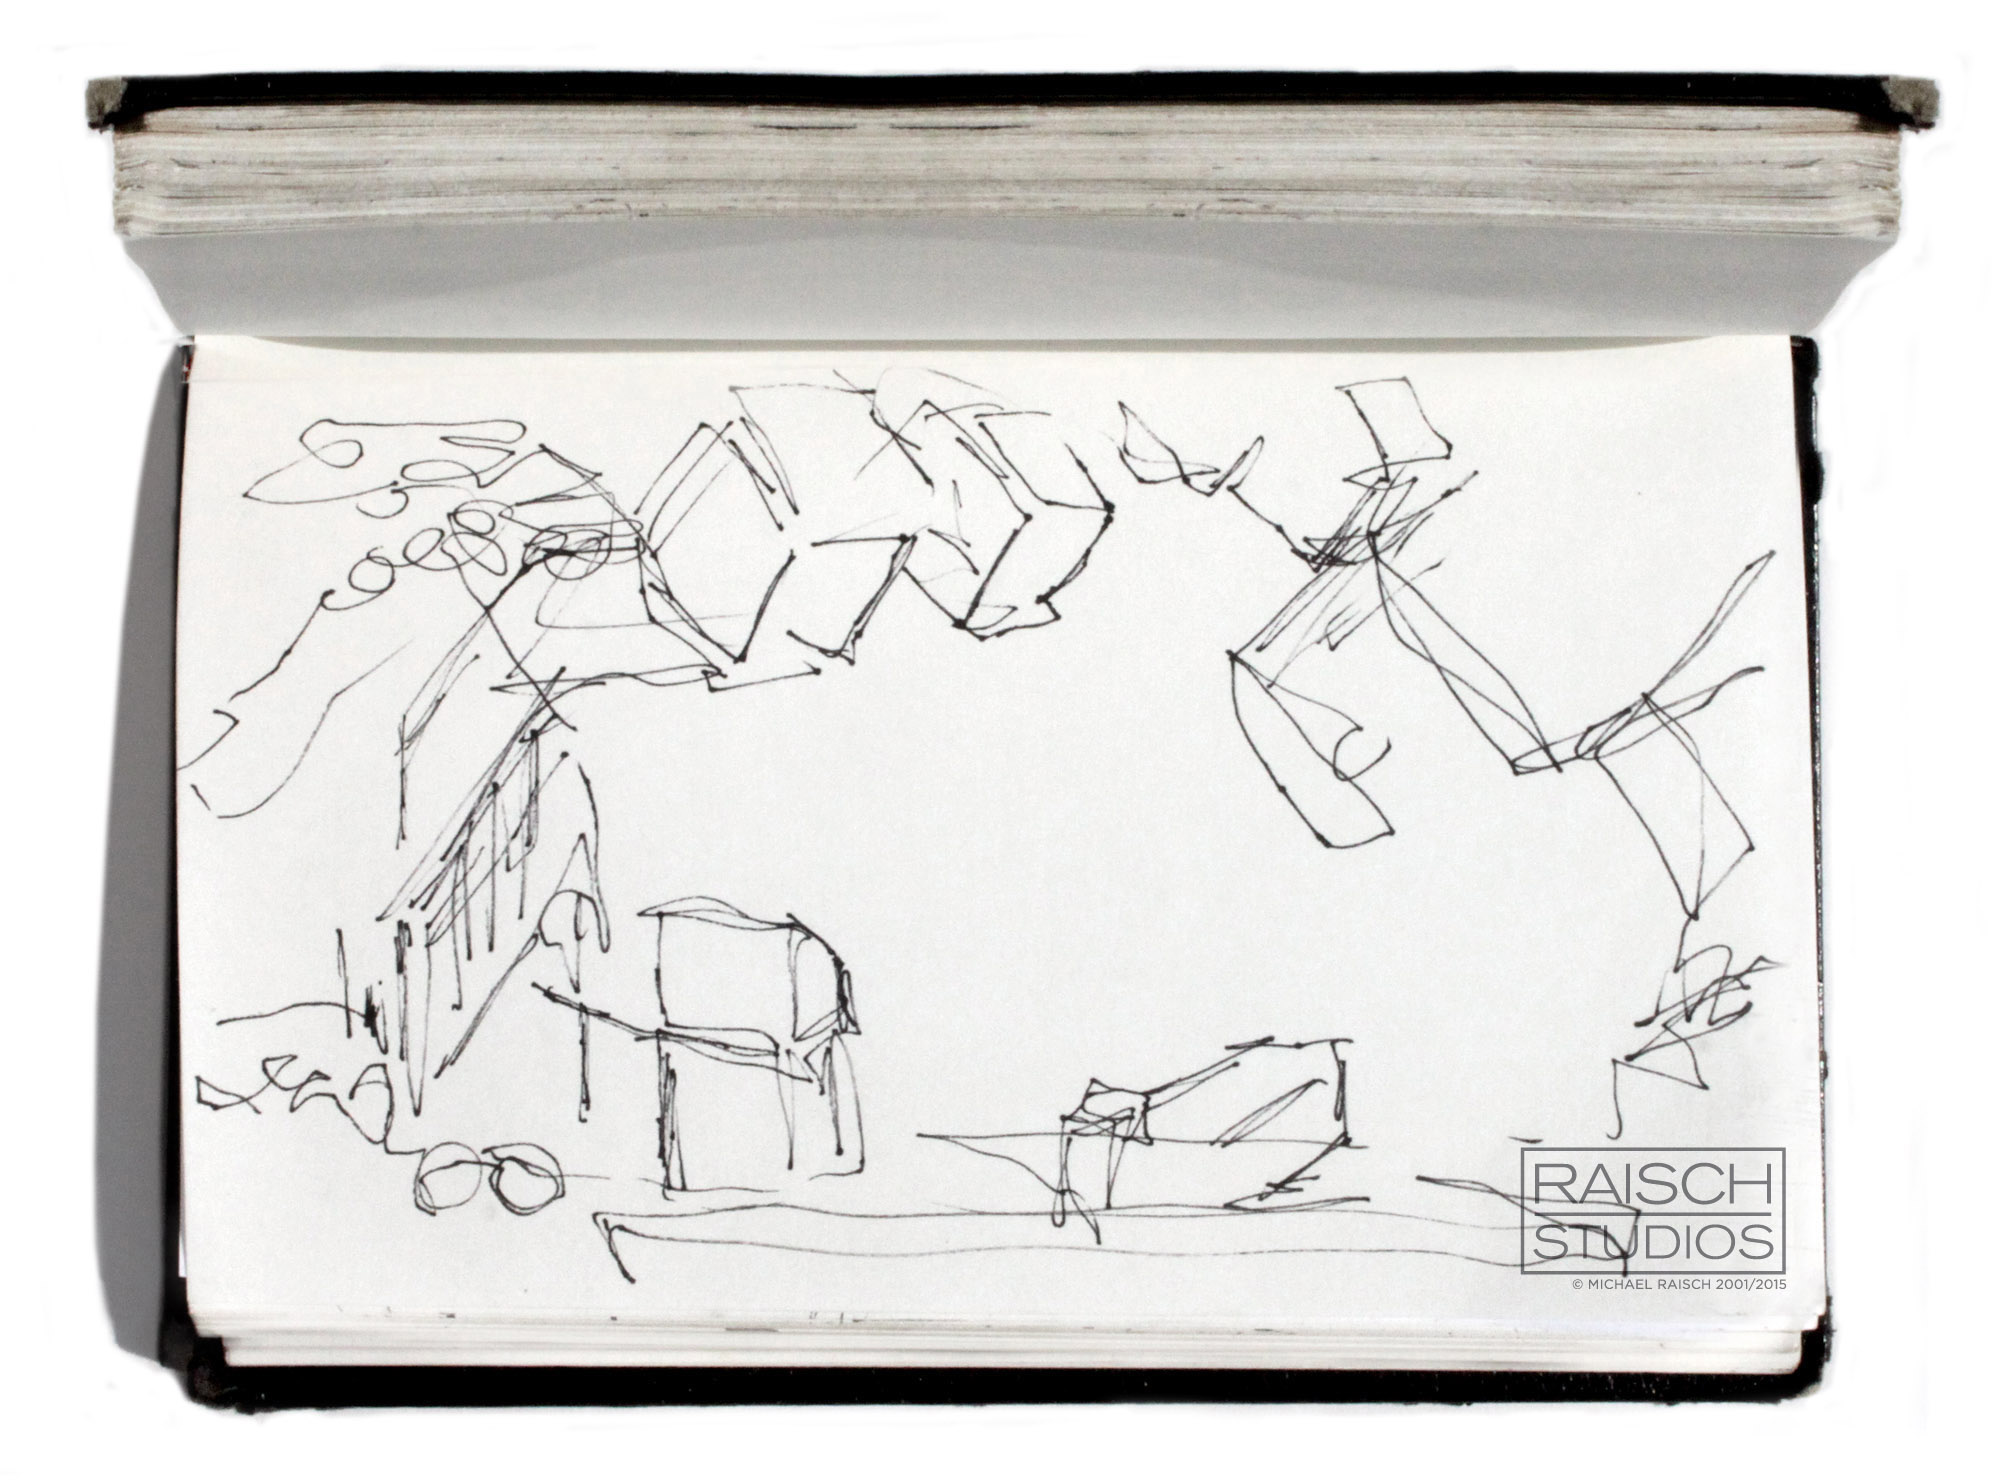 Gesture drawing of the 'Saturday Night Live' Studios, November 2001